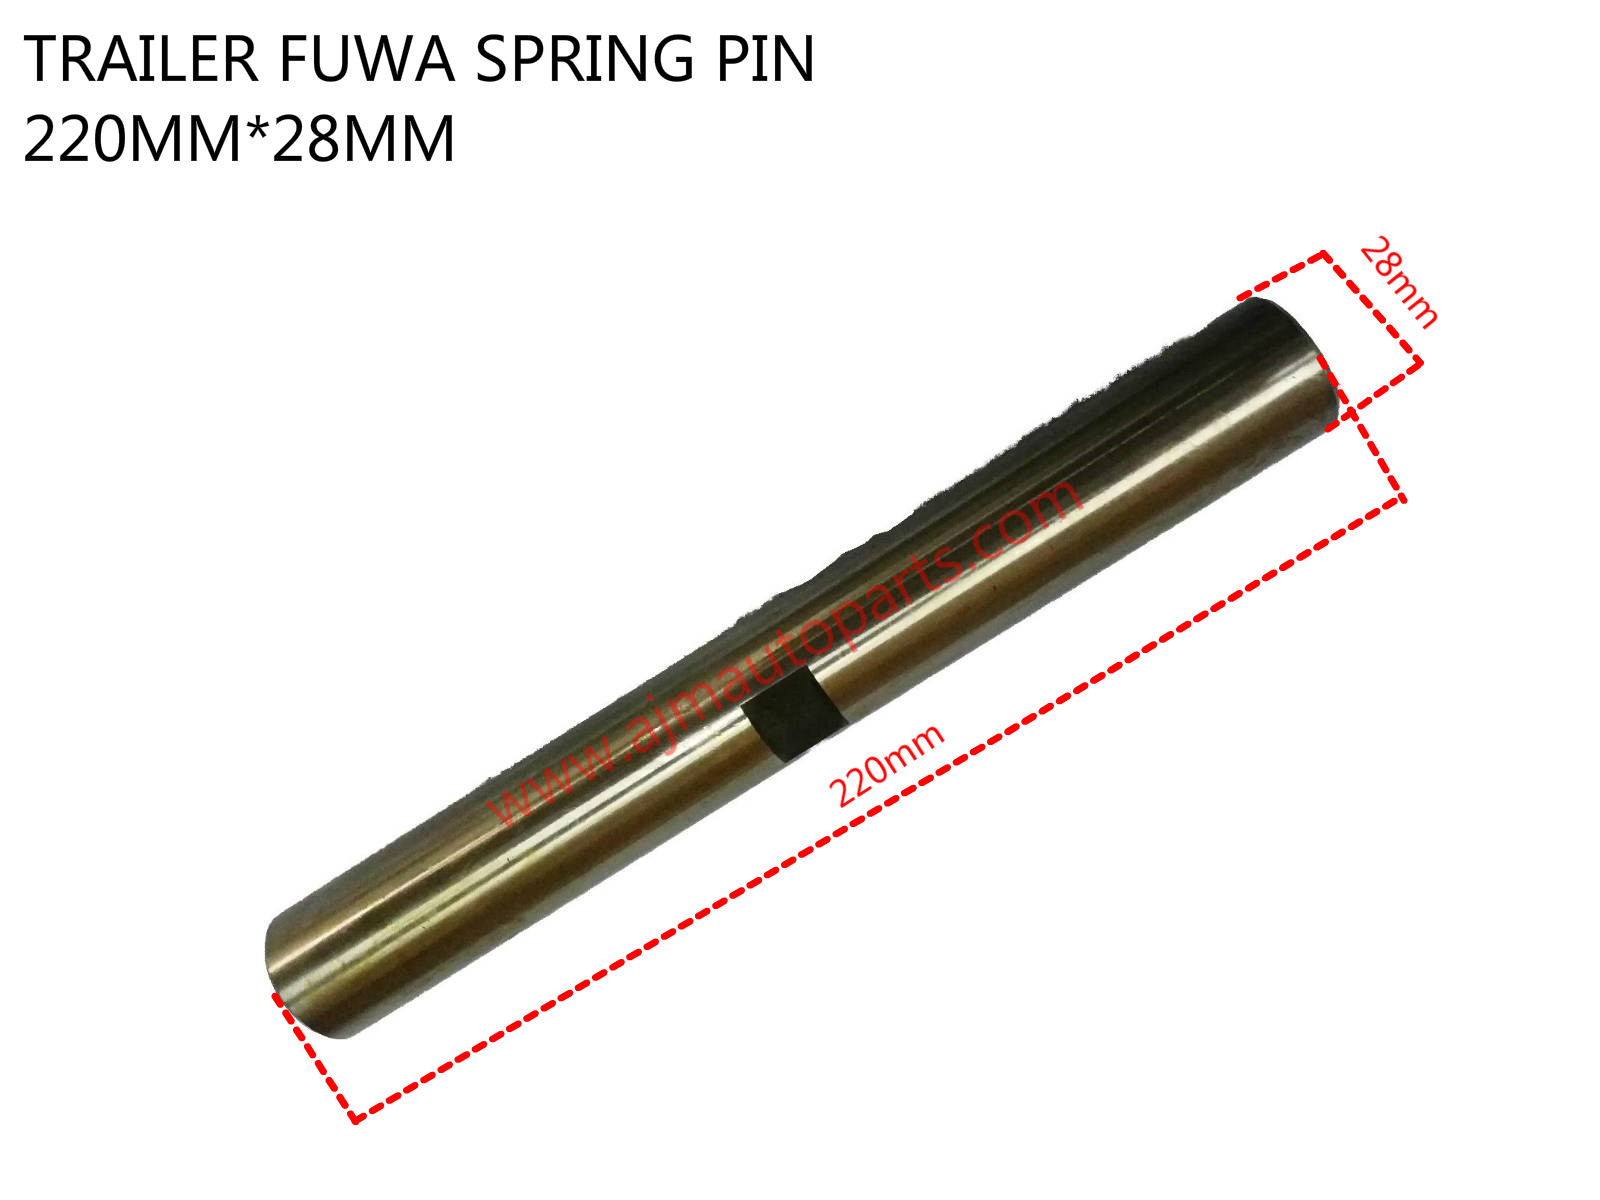 TRAILER FUWA SPRING PIN-28MMX220MM